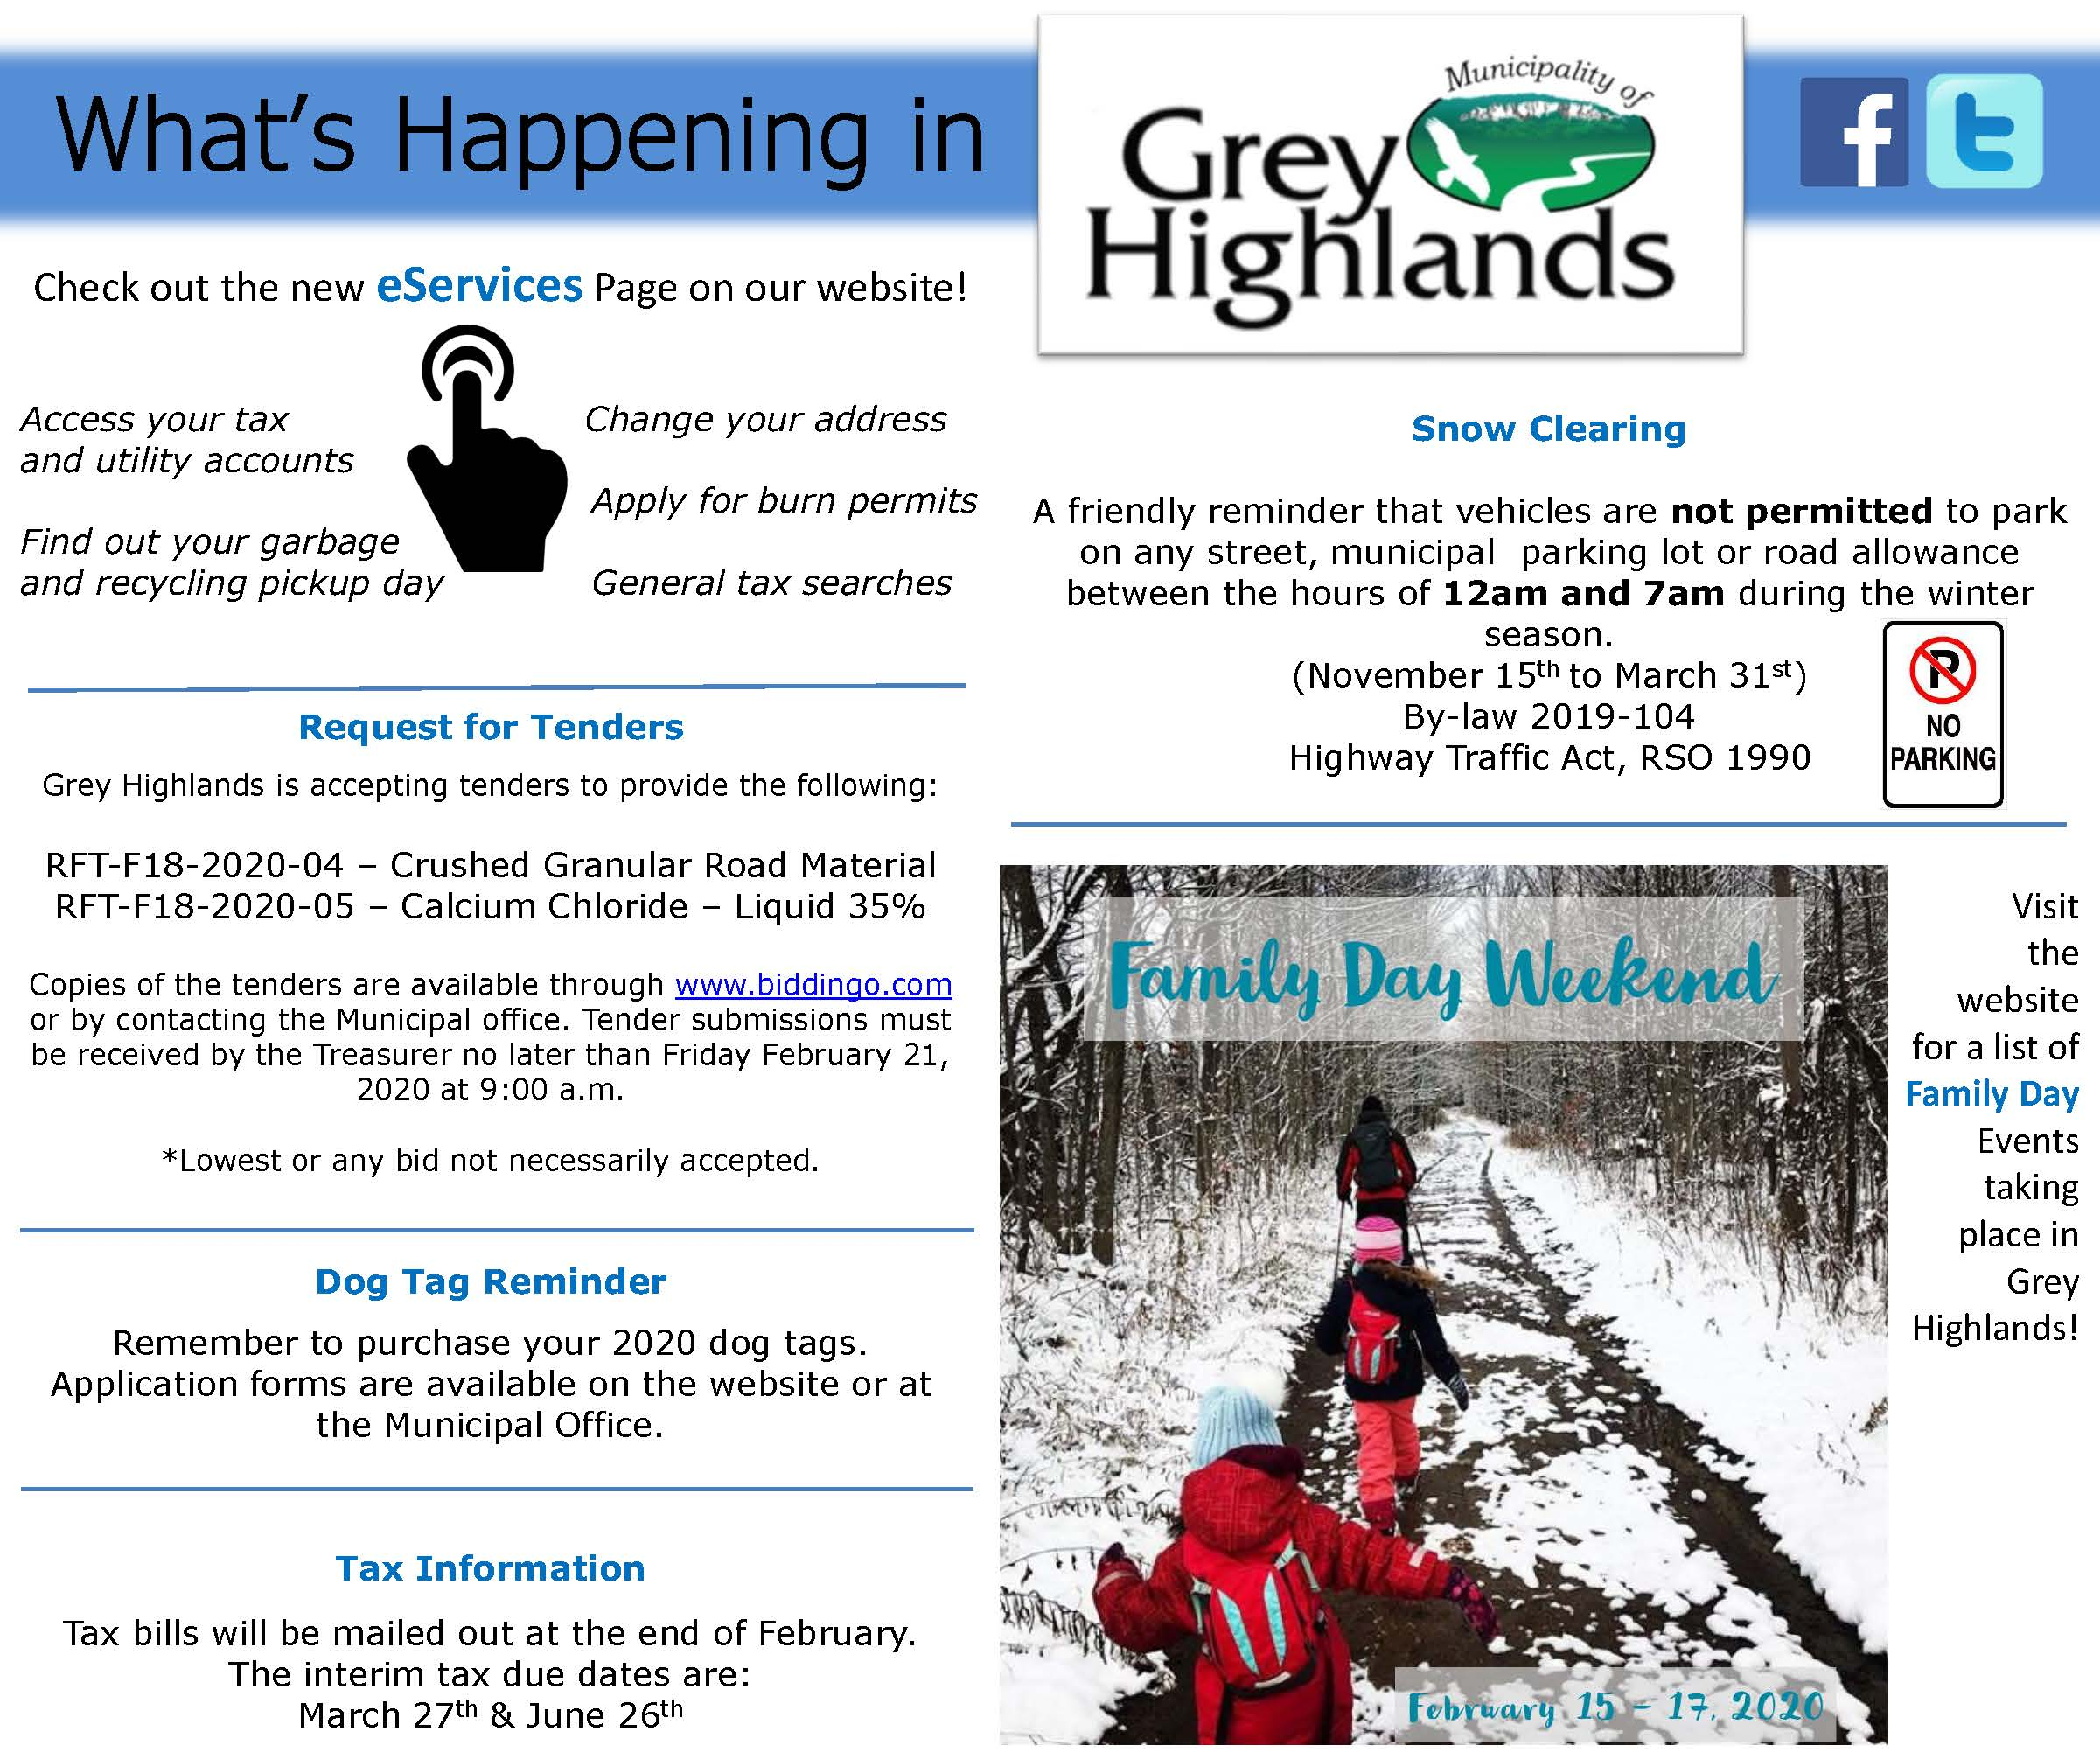 What's Happening this week in Grey Highlands!